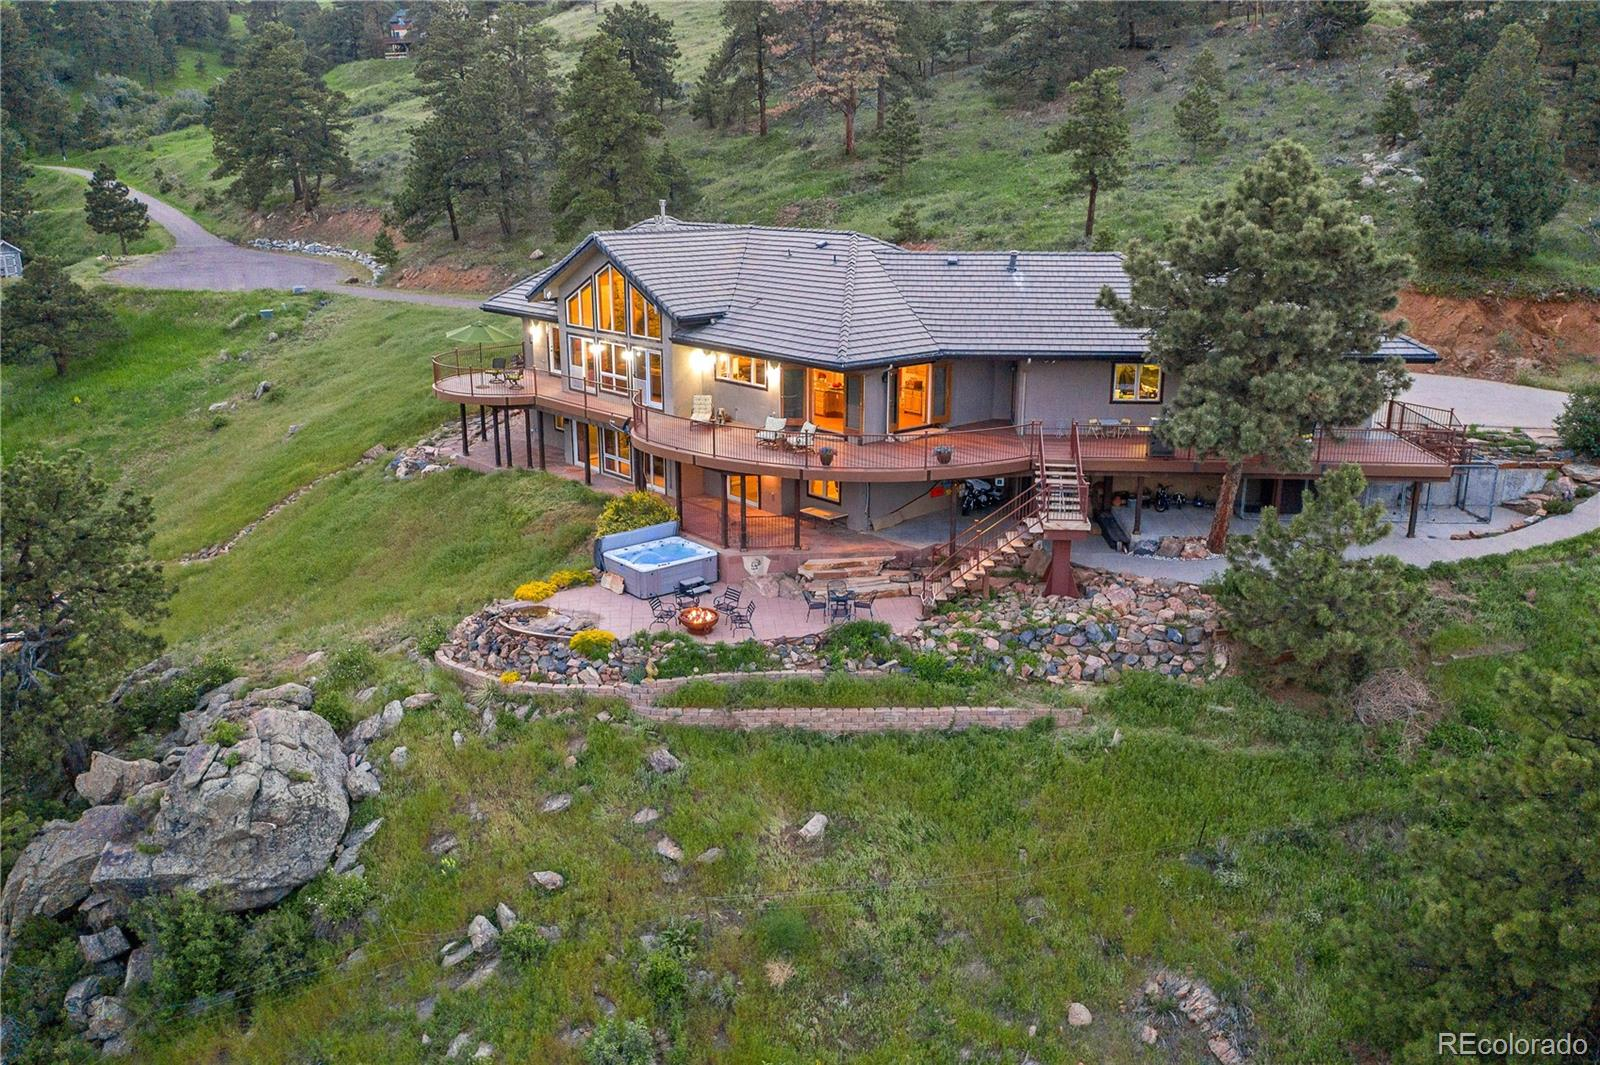 Escape to this stunning retreat on Lookout Mountain! Less than 30 minutes from Downtown Denver, you can enjoy this private, serene setting with panoramic views. Explore 6.46 acres surrounded by Apex Park/Jefferson County Open Space, which has 9.5 miles of hiking trails on 697 acres.  Tranquil scenery as you enter the front door.  Open all the french doors and breathe the fresh mountain air.  Gather around the kitchen island and take in the city lights and trees for miles.  Kitchen is complete with custom Alder cabinetry, granite counters, double ovens, Dacor gas range with griddle, wine fridge, and coffee bar.  Expansive wrap-around deck with a natural gas grill with room to relax and entertain.  Custom stone stairs lead to a hot tub, water feature and natural gas fire pit.  Large pantry/mudroom with custom shelves.  Cozy dining room perfect for entertaining.  Gorgeous stone fireplace.  Main floor laundry/craft room.  Guest suite with a gas fireplace, private full bath and huge walk-in closet.  Grand master suite with sitting area and custom his/hers Elfa closet.  Enjoy the outside water feature from the 5 piece bath with a  jetted tub.  The lower level has more french doors to walk-out and enjoy the views.  The bar area has a full refrigerator, wall oven, microwave, dishwasher and pool table.  Relax in the cozy living room in front of the gas fireplace.  Climate-controlled wine room with bistro table.  Huge exercise room.  2 large bedrooms with a large bathroom.  Extra storage.  New water heaters.  Peaceful views from every window.  Playground area with swing set and slide.  Special RV parking up by the pond just past the shed.  Be sure to check out the video tour.  The mountains are calling!